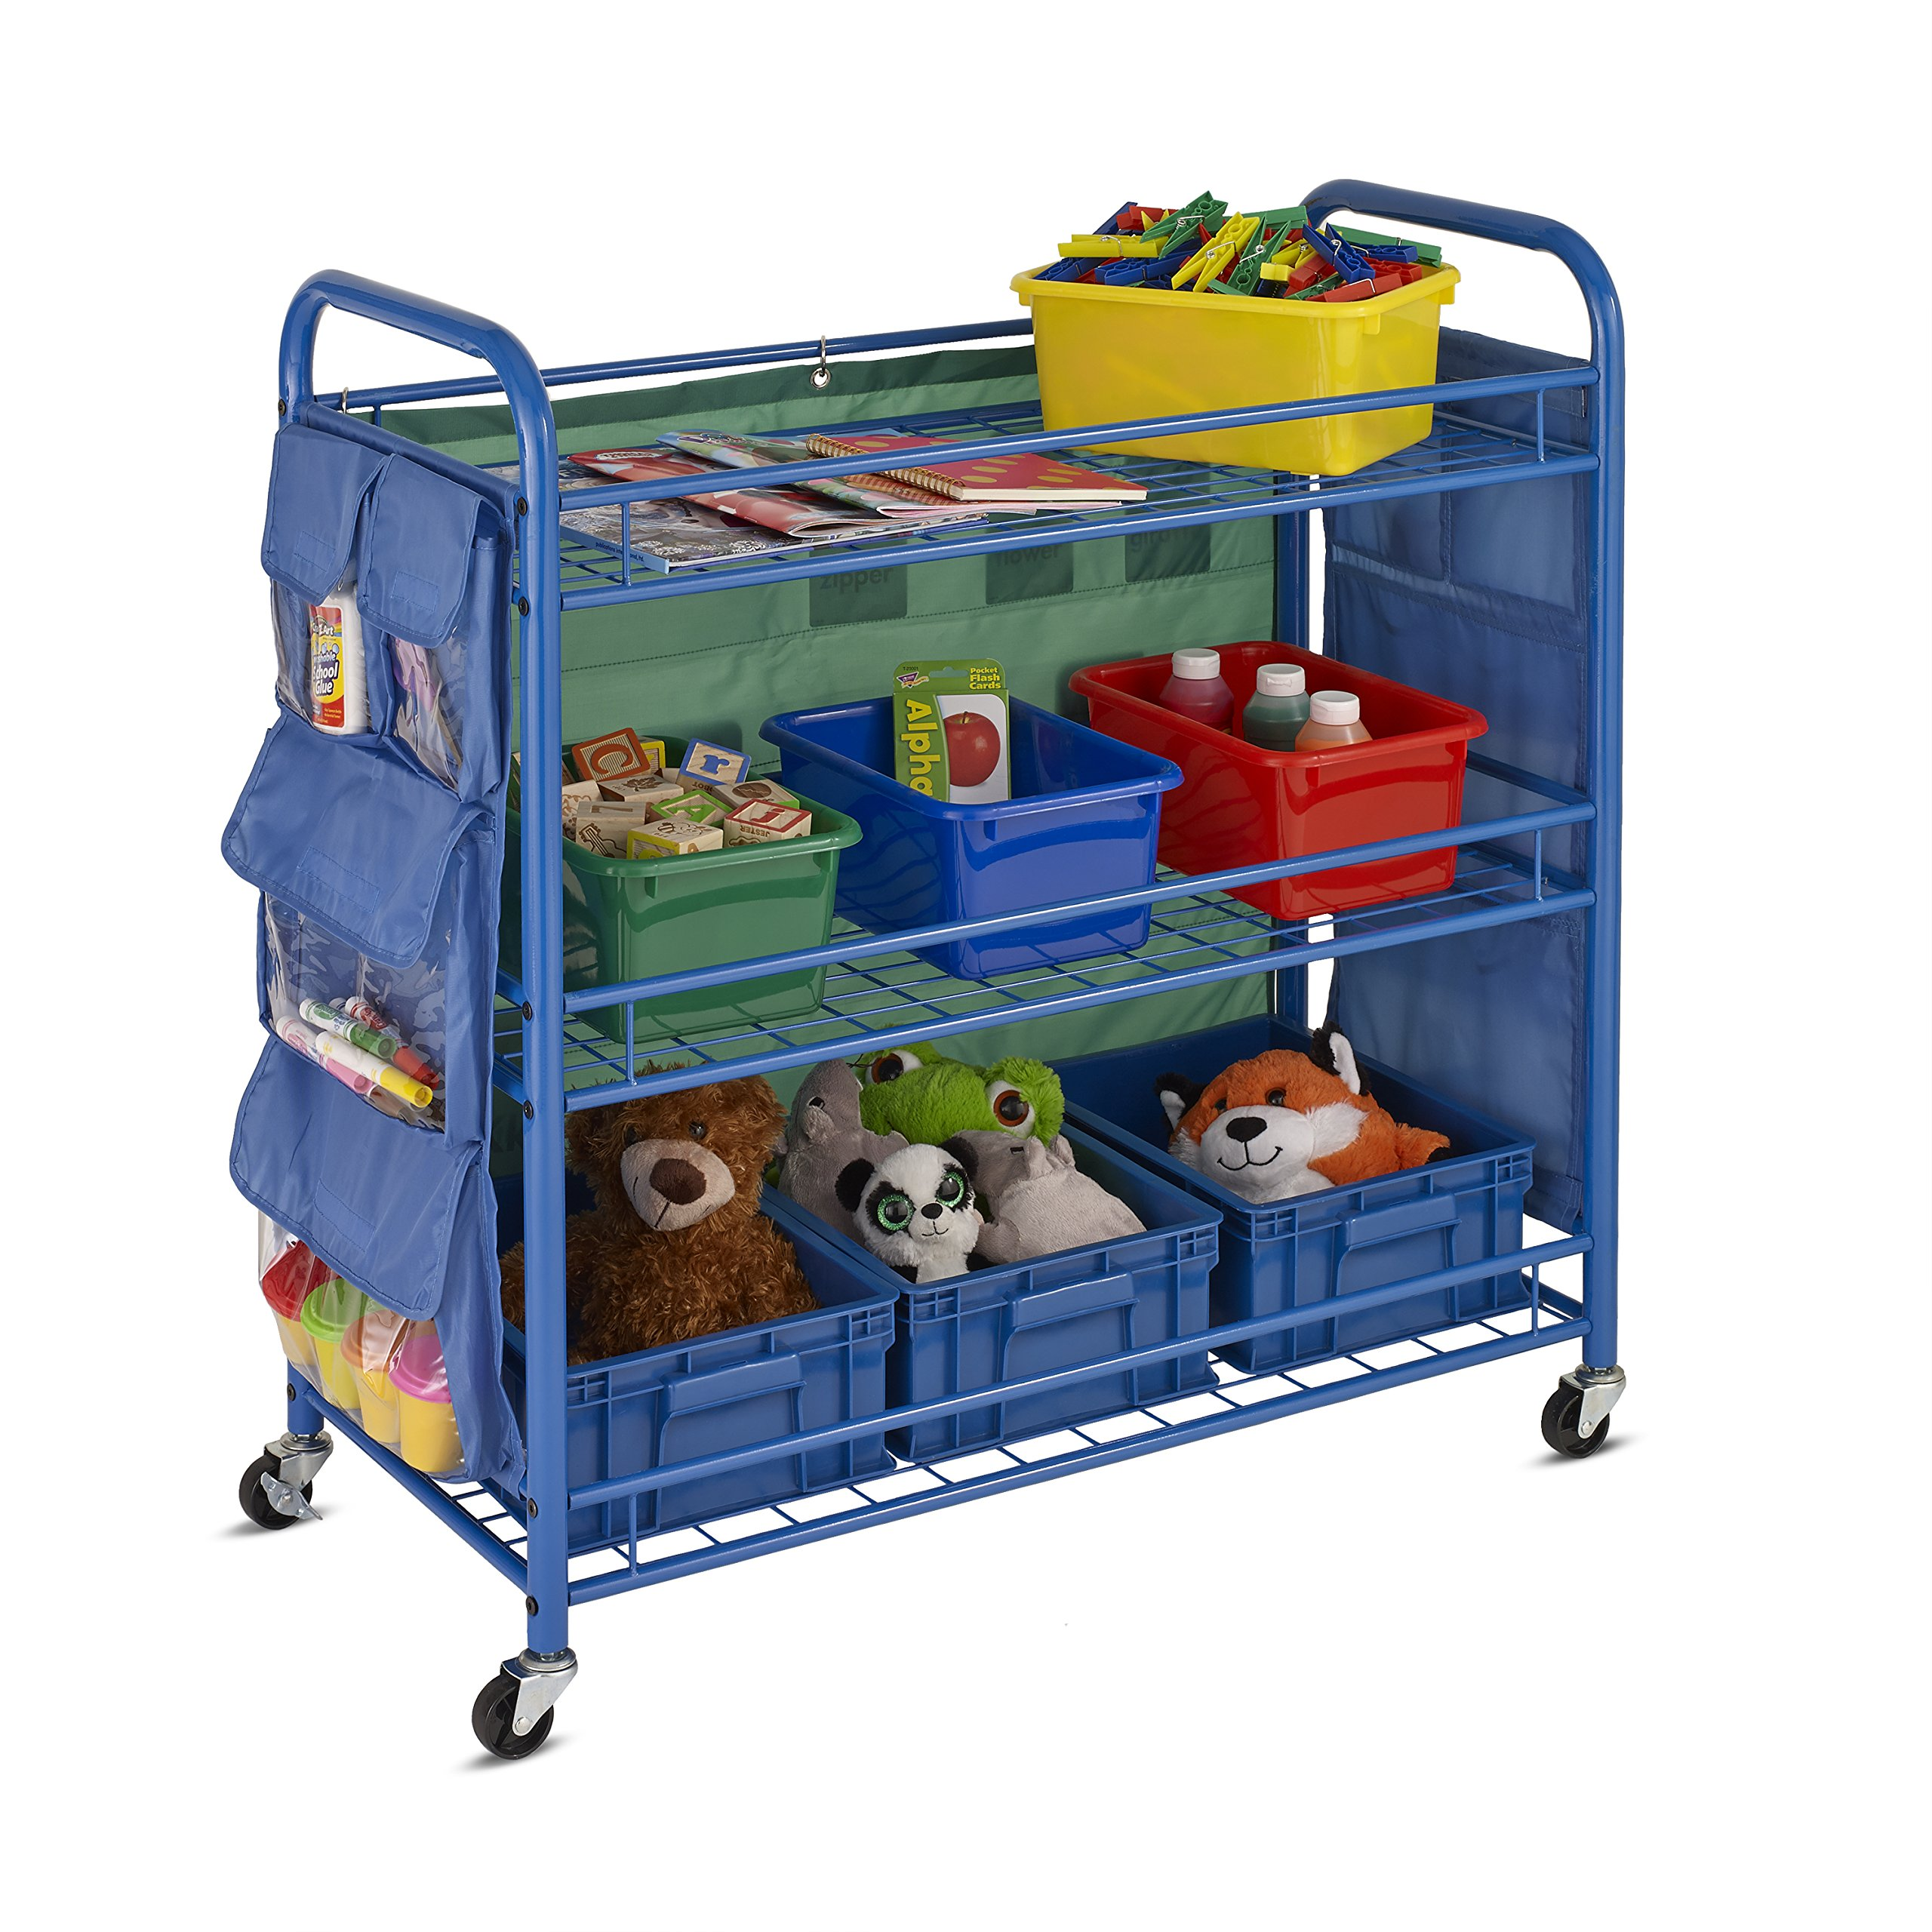 Honey-Can-Do All- Purpose Rolling Activity Cart, 34L x 35H, Blue by Honey-Can-Do